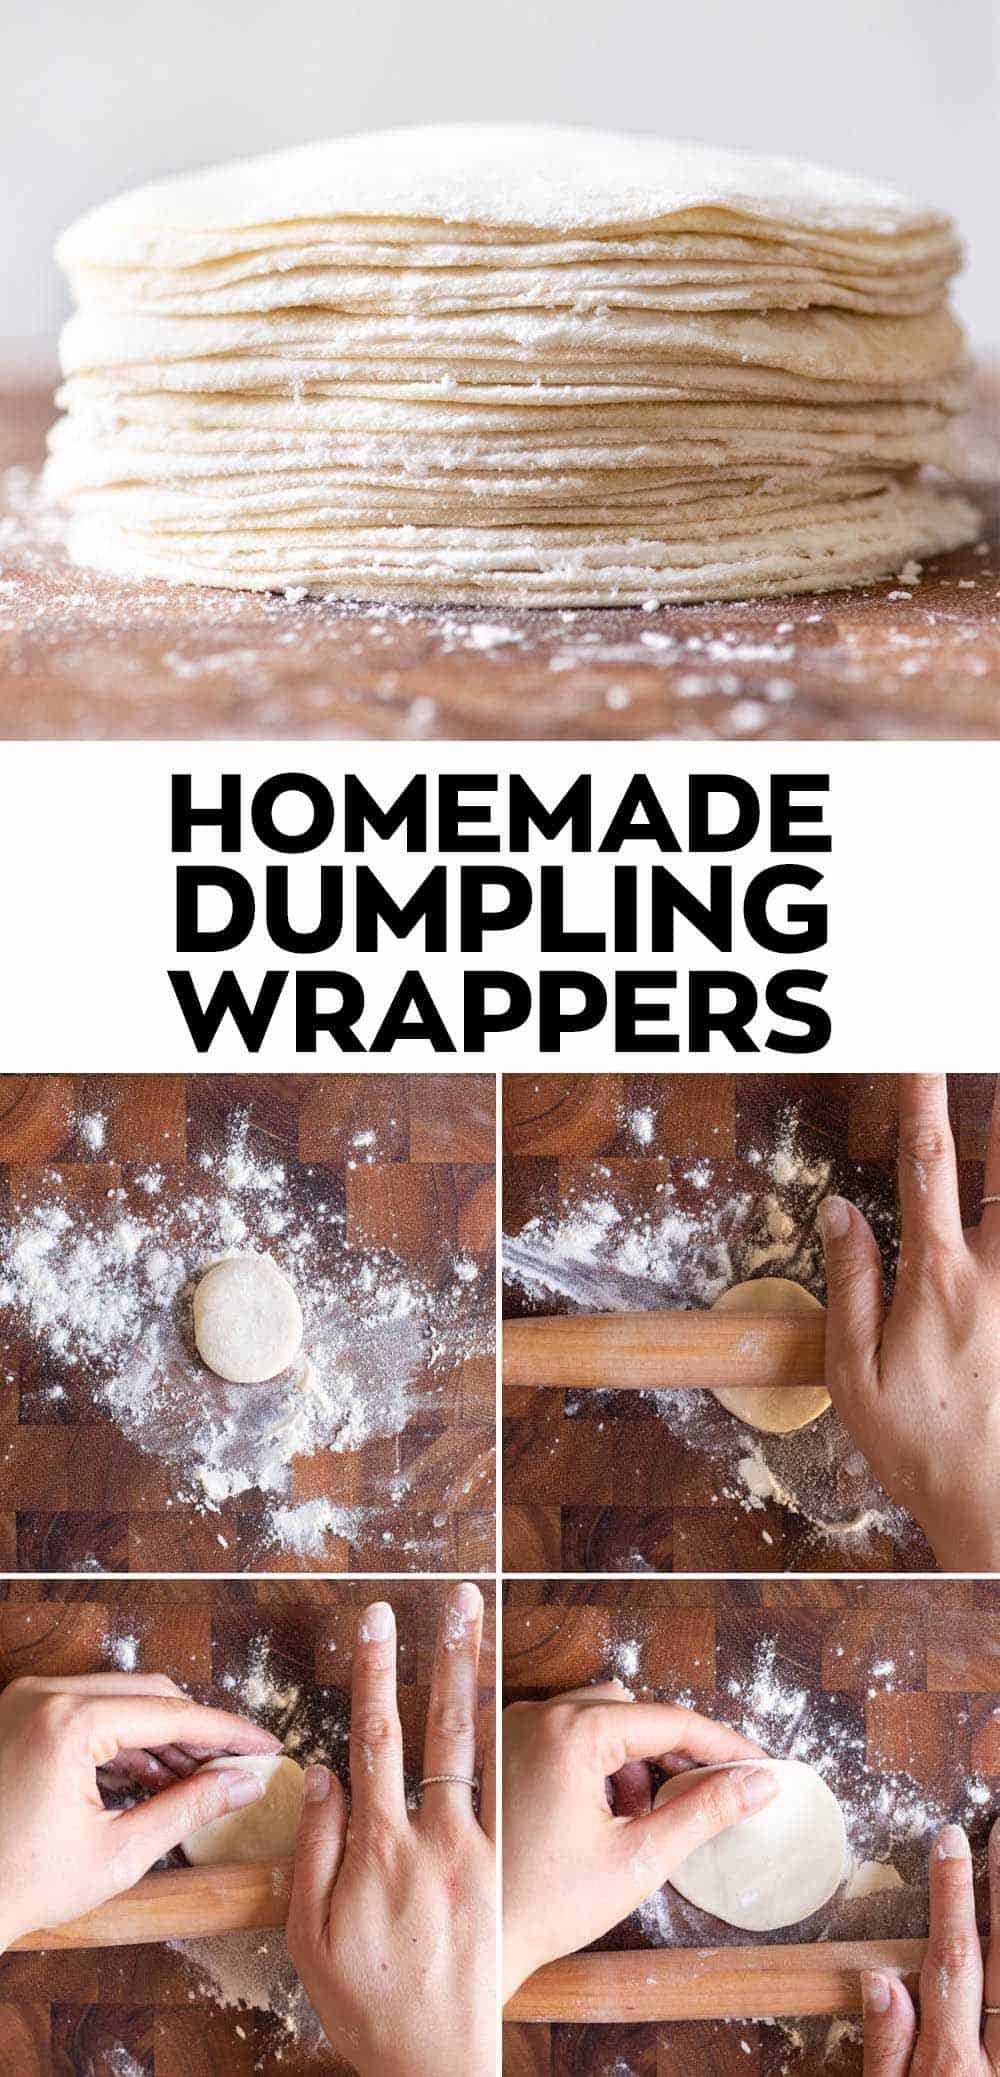 How to Make Dumpling Wrappers - Step-by-step guide